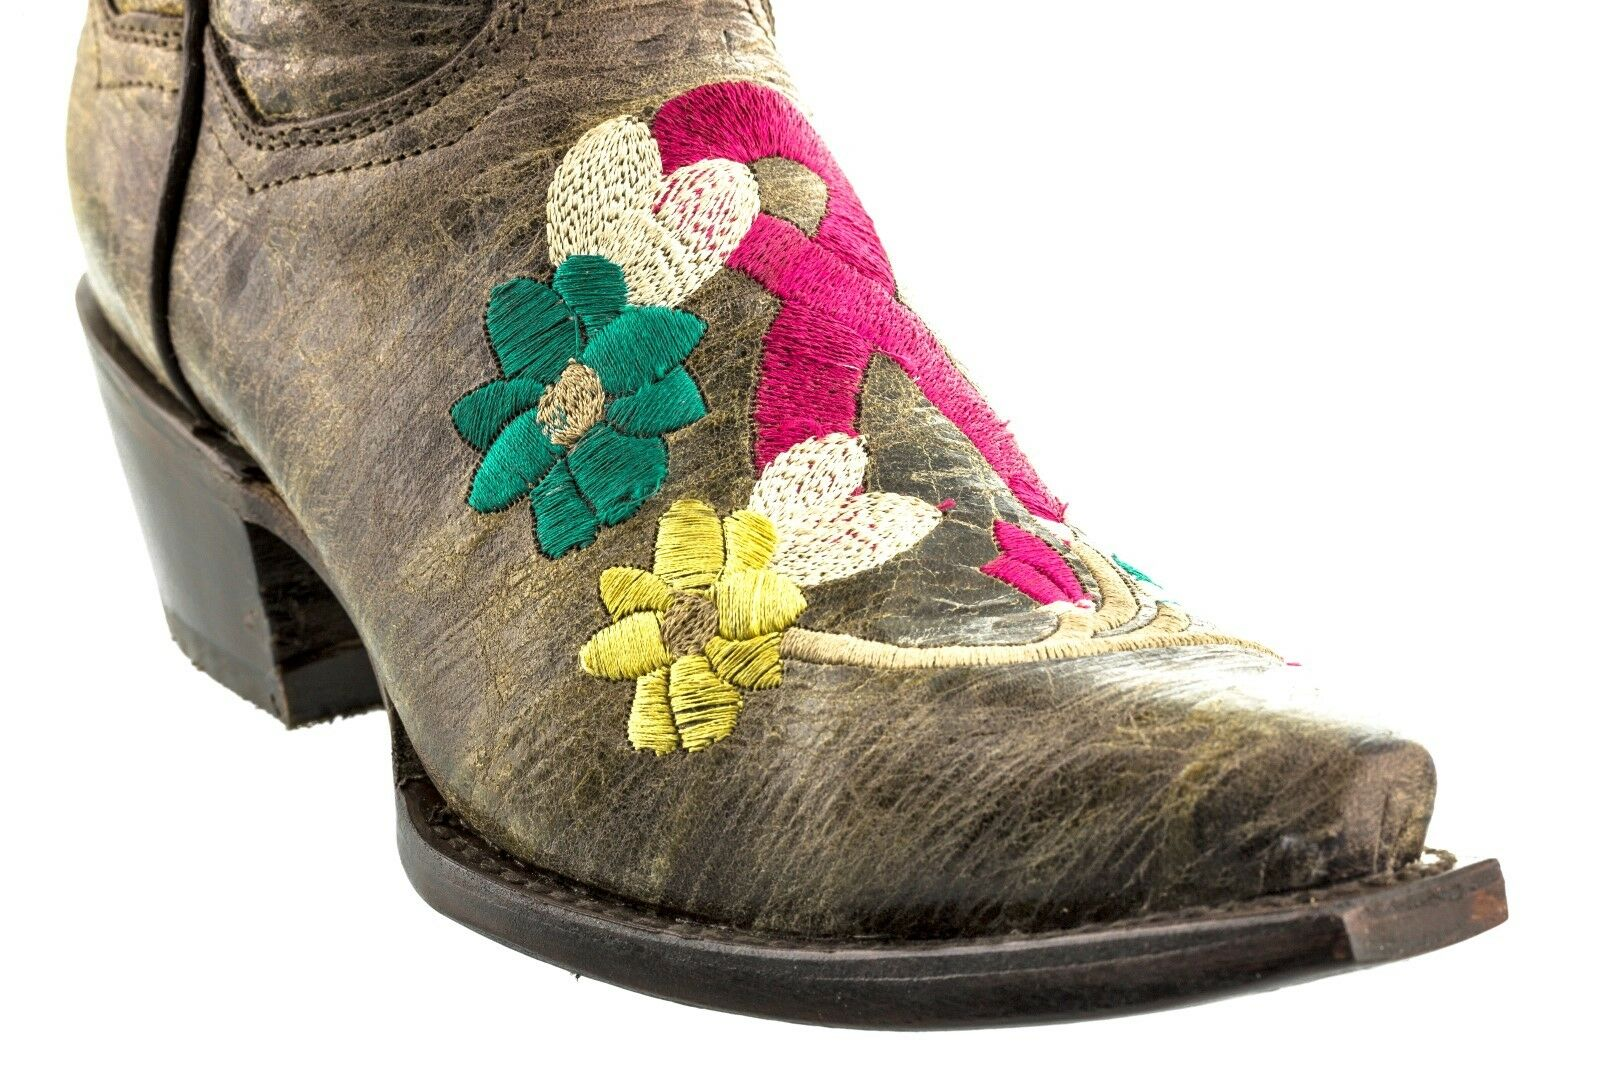 Damenschuhe Damenschuhe Damenschuhe Braun Breast Cancer Awareness Ribbon EmbroideROT Cowgirl Stiefel Snip Toe 2f9089